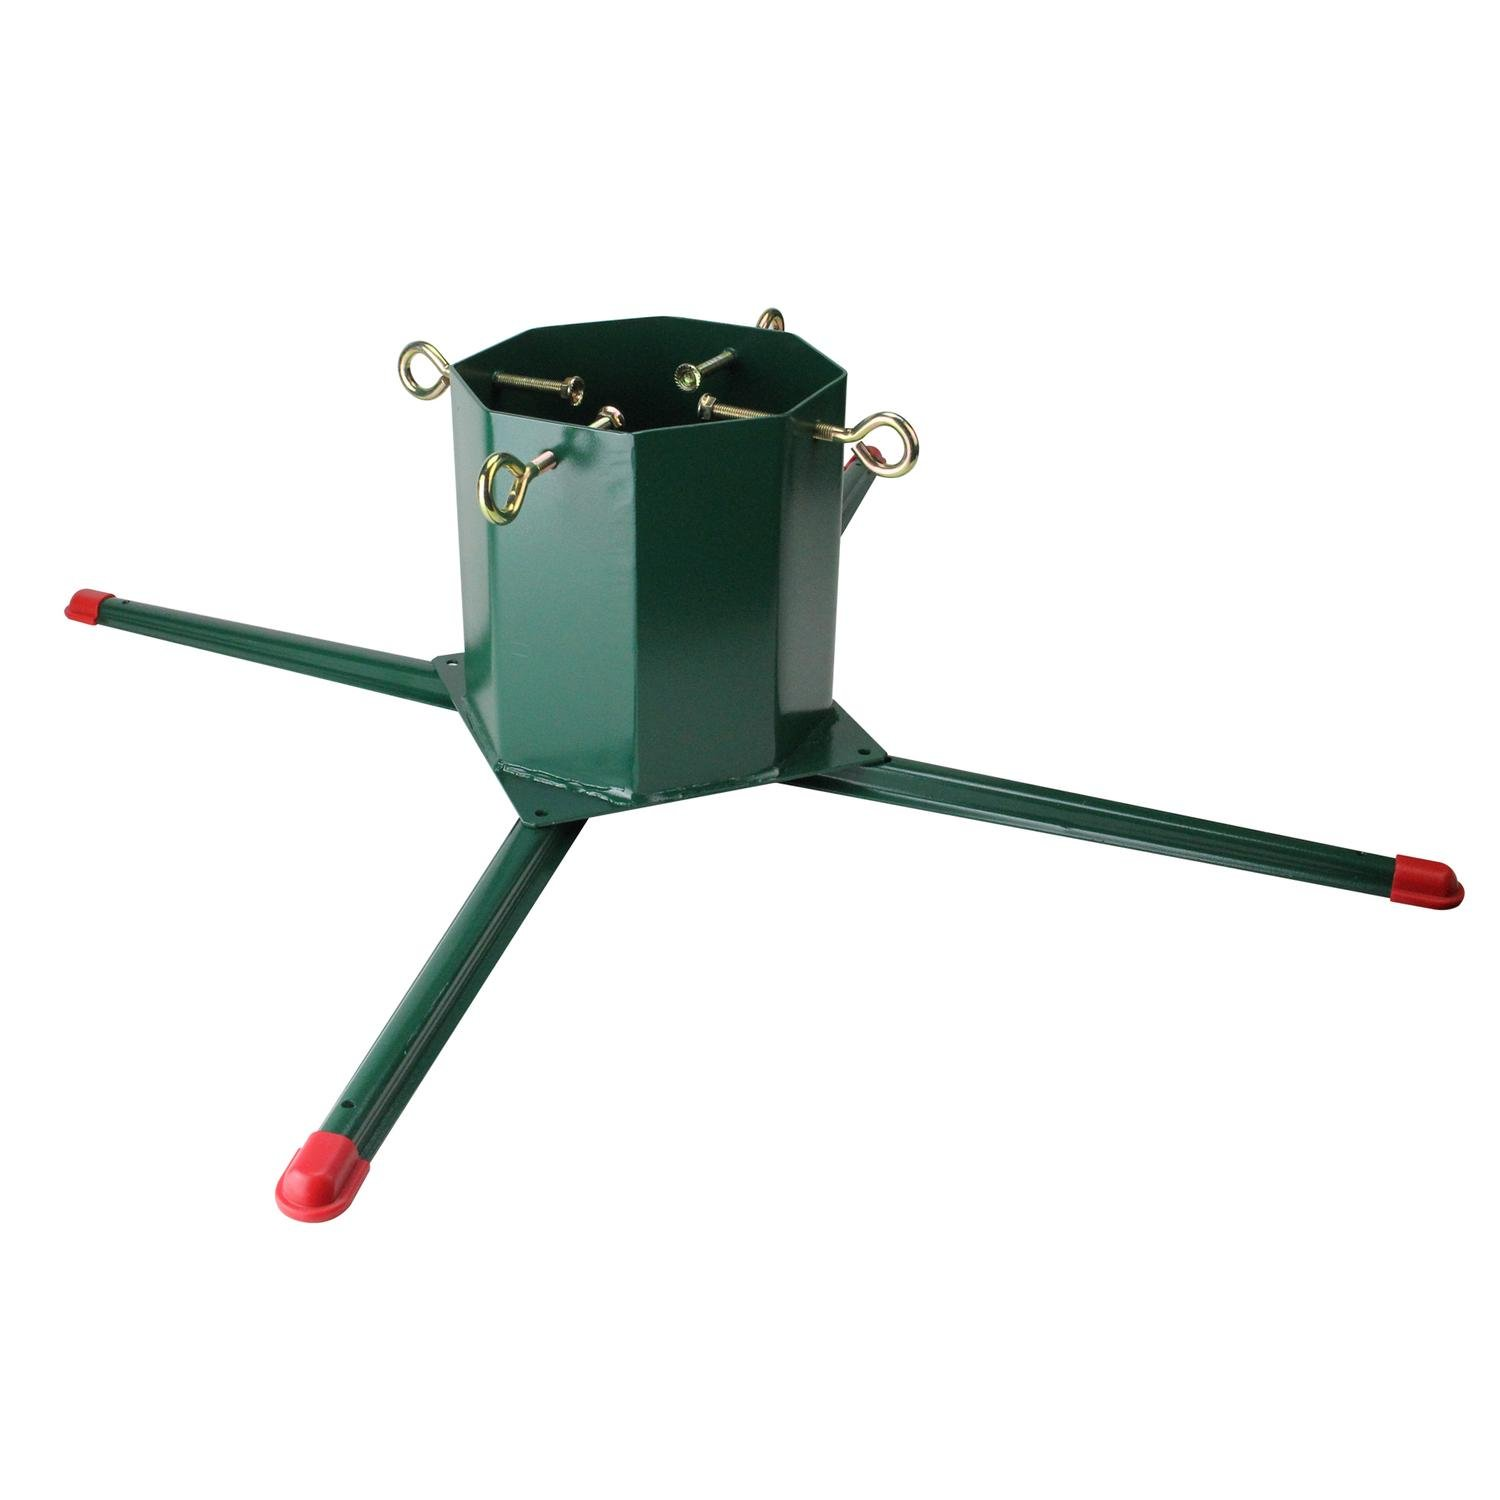 Jack Post Heavy Duty Welded Christmas Tree Stand - For Real Live Trees Up To 14' Tall